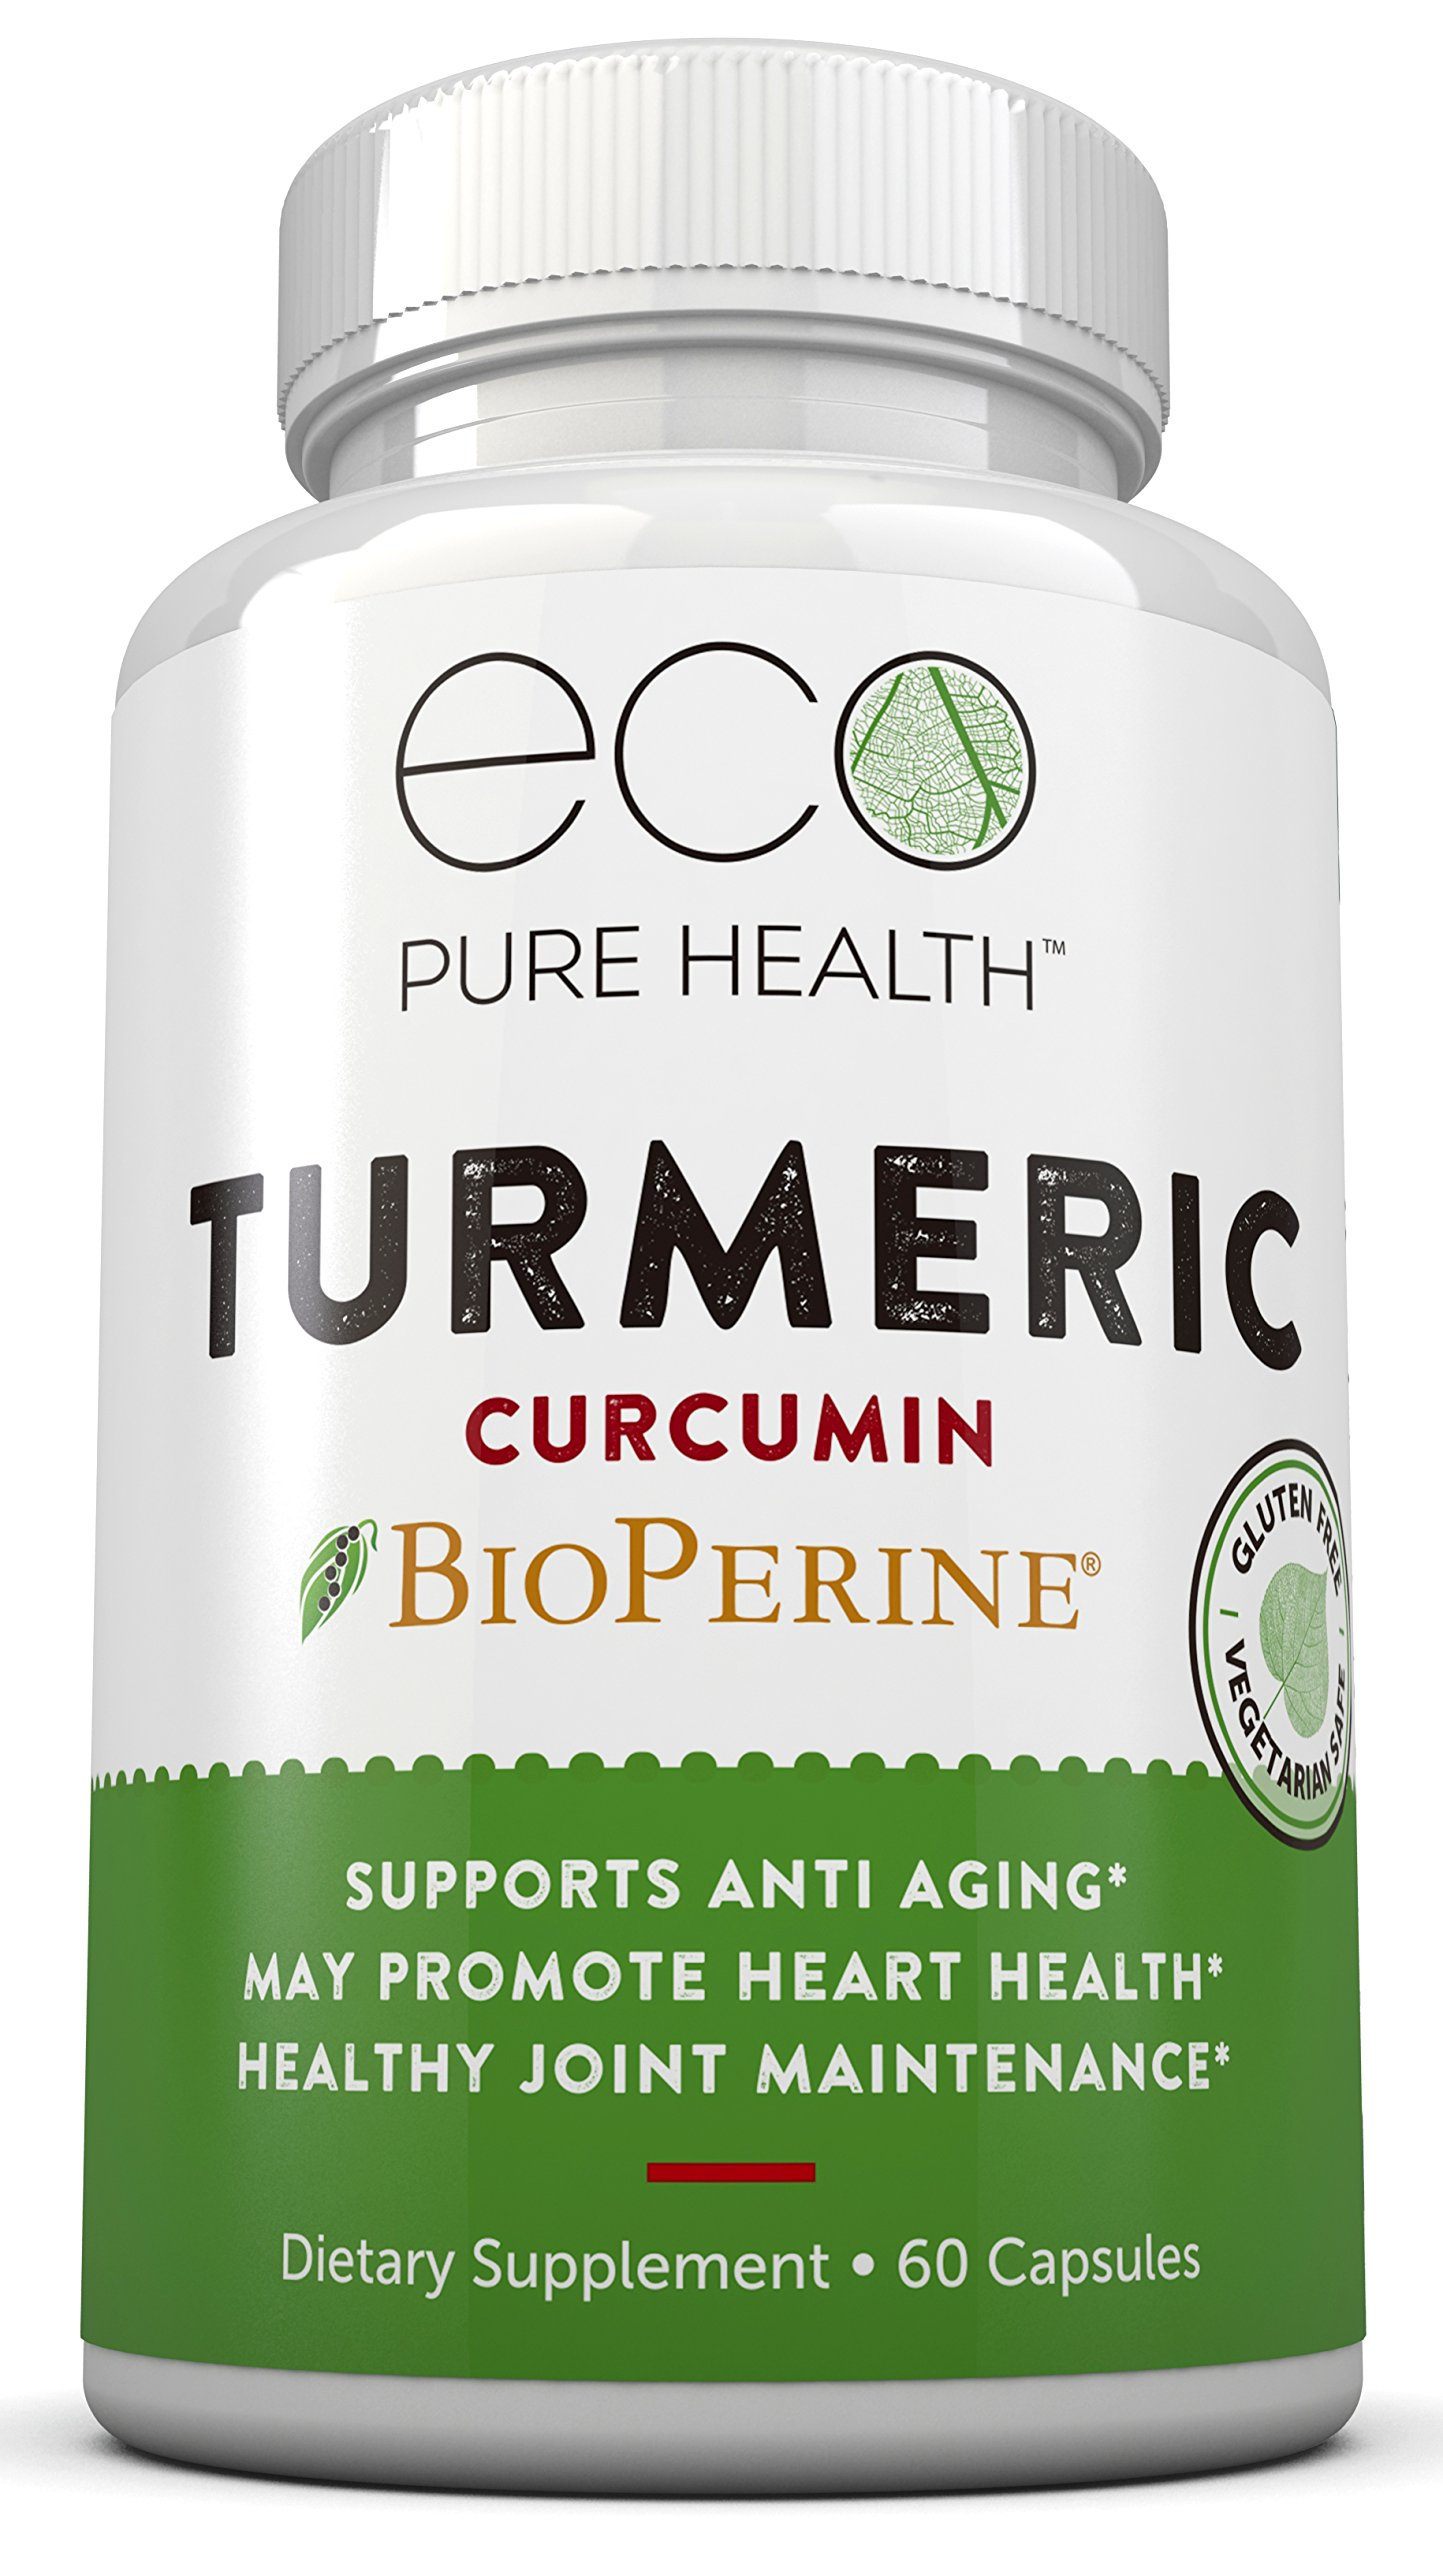 Turmeric Curcumin with Bioperine (Black Pepper Extract) with 95% Standardized Curcuminoids, Premium Supplement For Pain Relief & Joint Support By Eco Pure Health